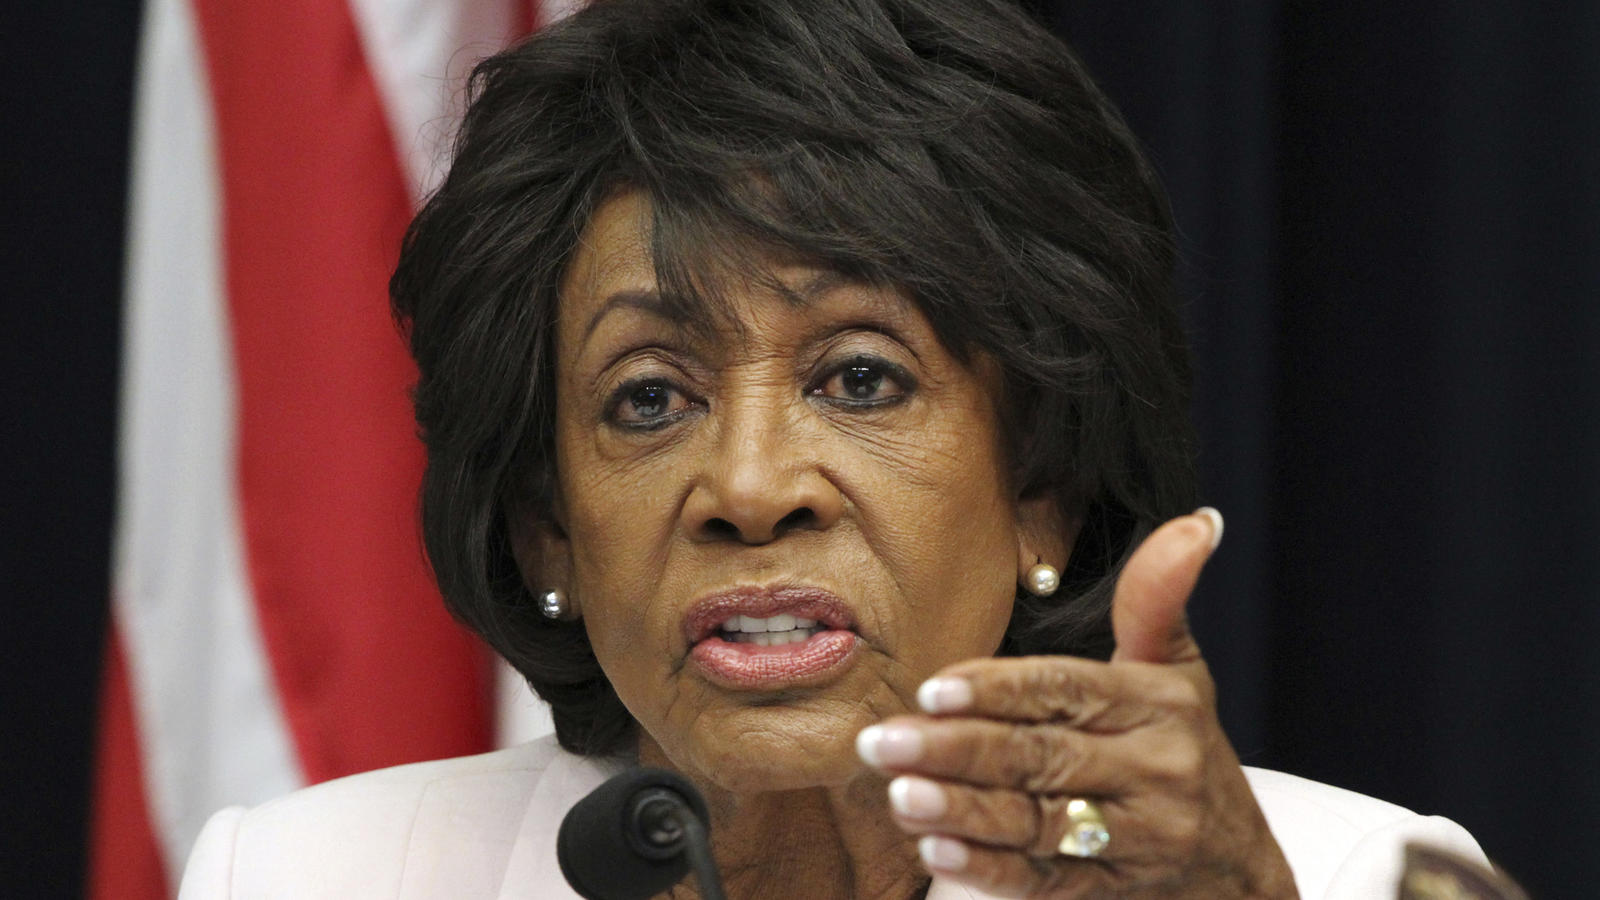 ct-maxine-waters-death-threat-20180628-001